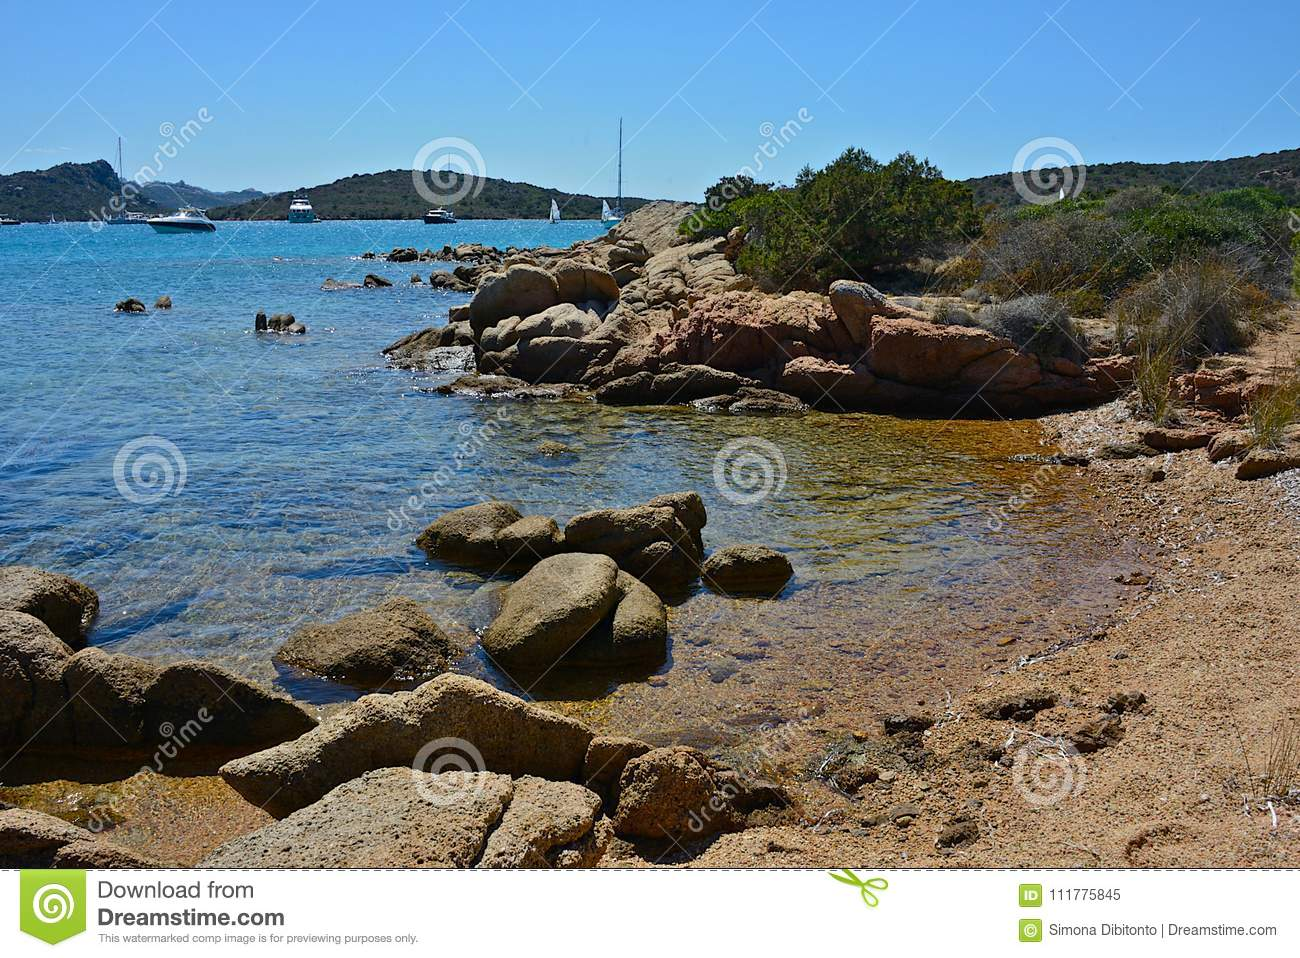 Seascape with sandy beach, blue sea and sky and some boats moored